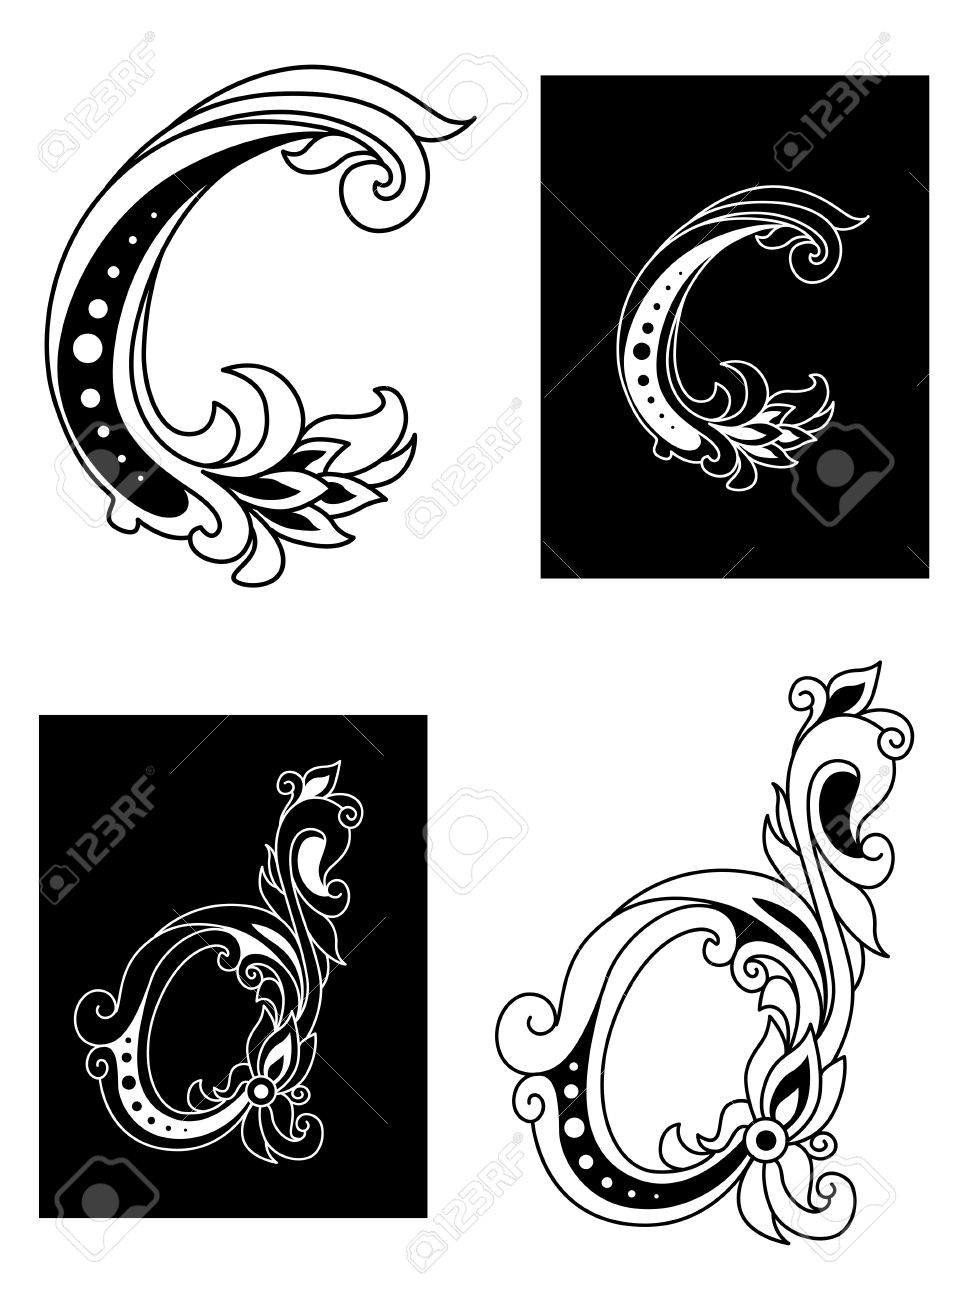 Decorative Letters Decorative Letters C And D In Floral Style Isolated On Background